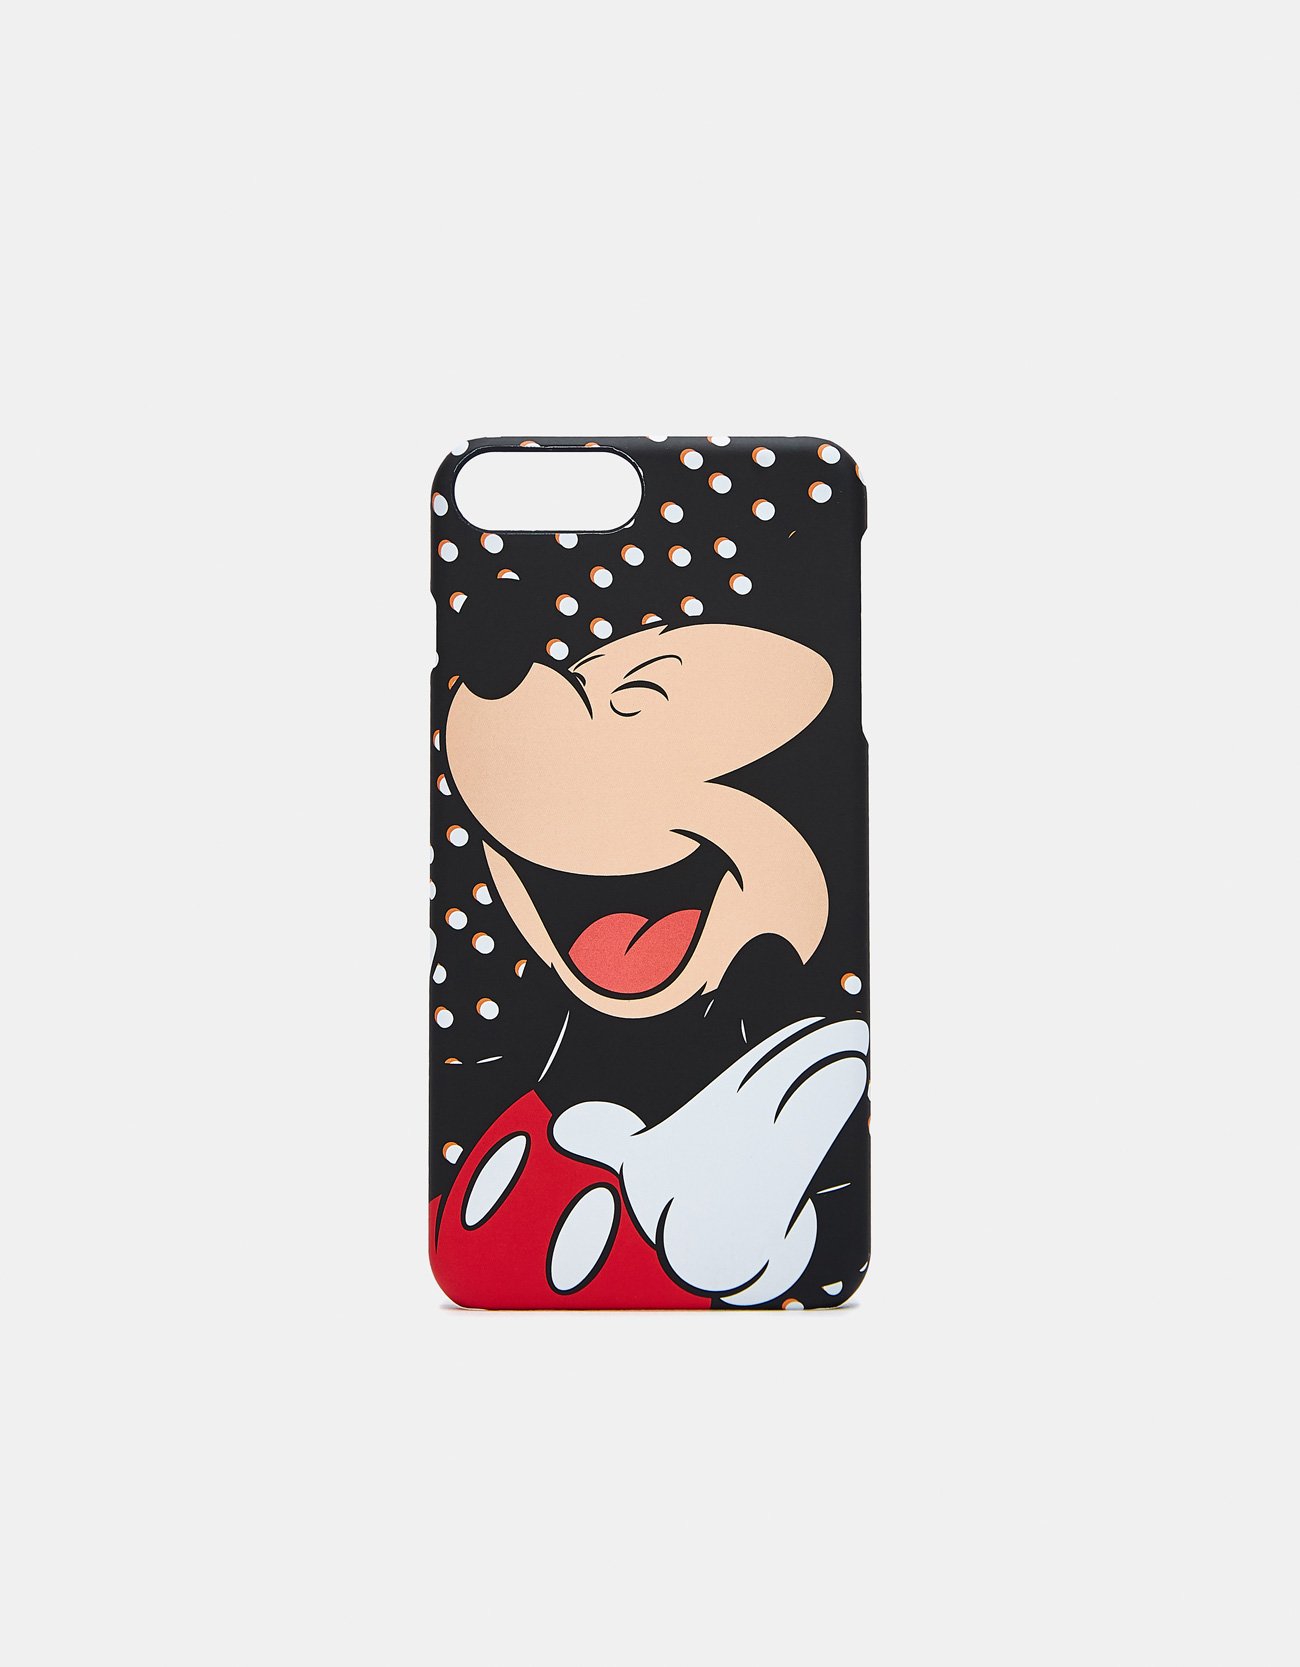 reputable site 242f4 e0bd0 Mickey Mouse iPhone 6 Plus/7 Plus/8 Plus case - iPhone Cases - Bershka  Belgium